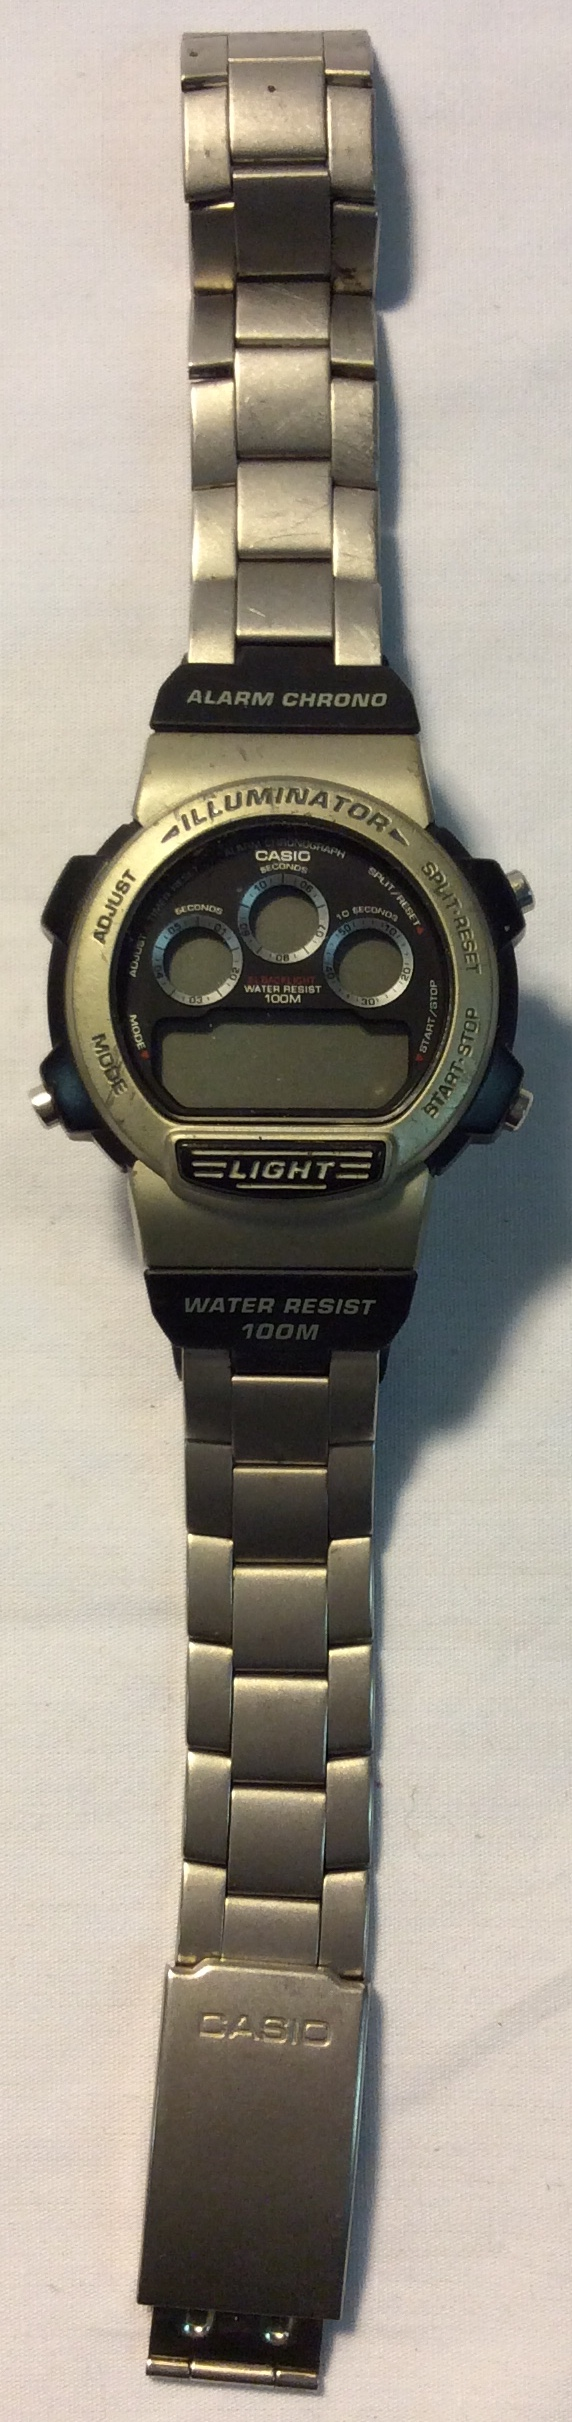 Casio Stainless steel back